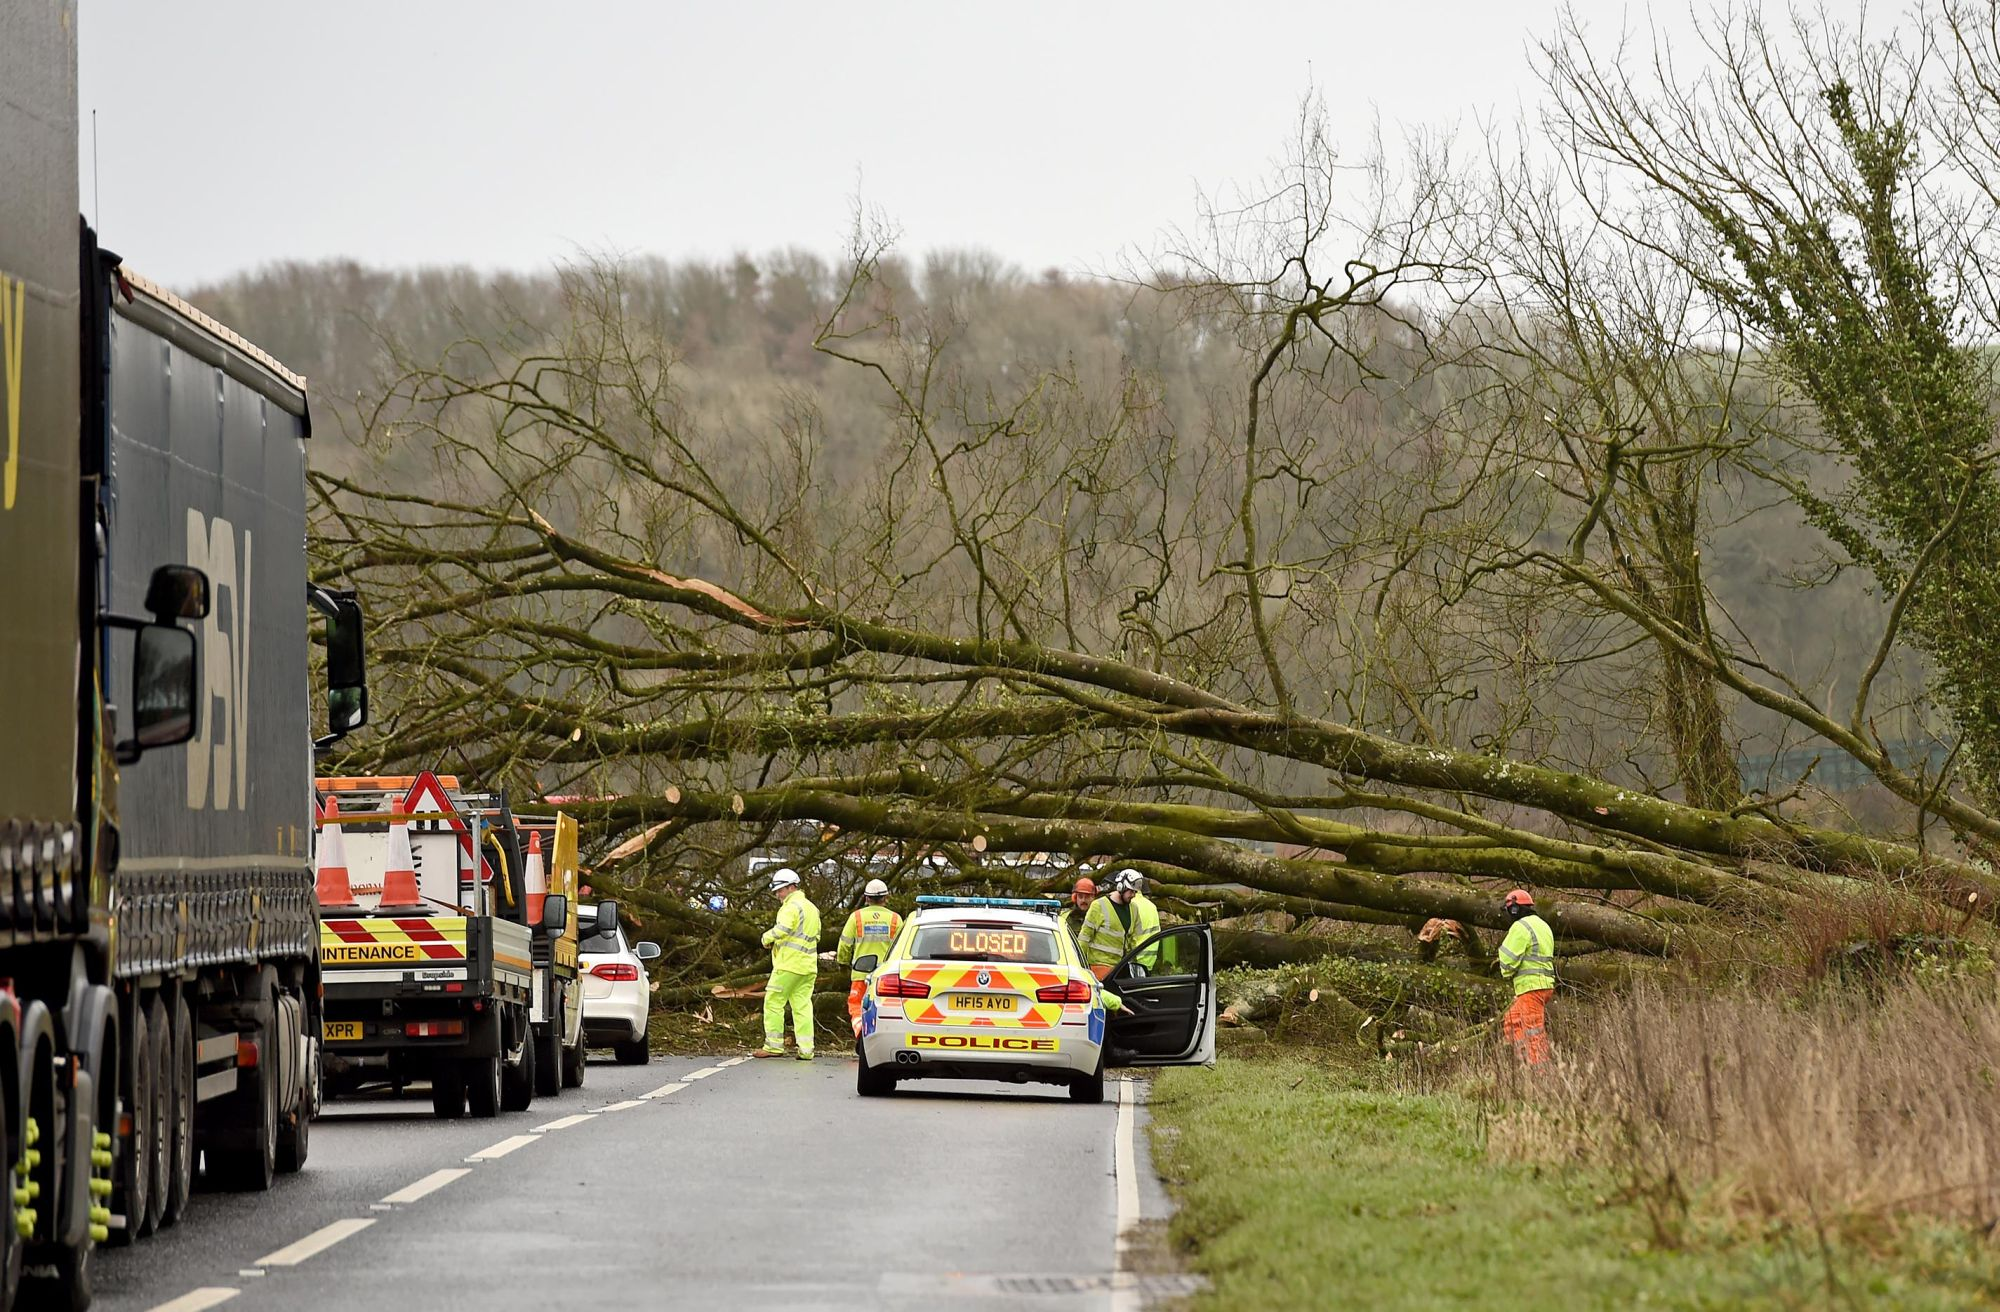 TRAFFIC: A fallen tree is blocking the road from Bampton to Wiveliscombe